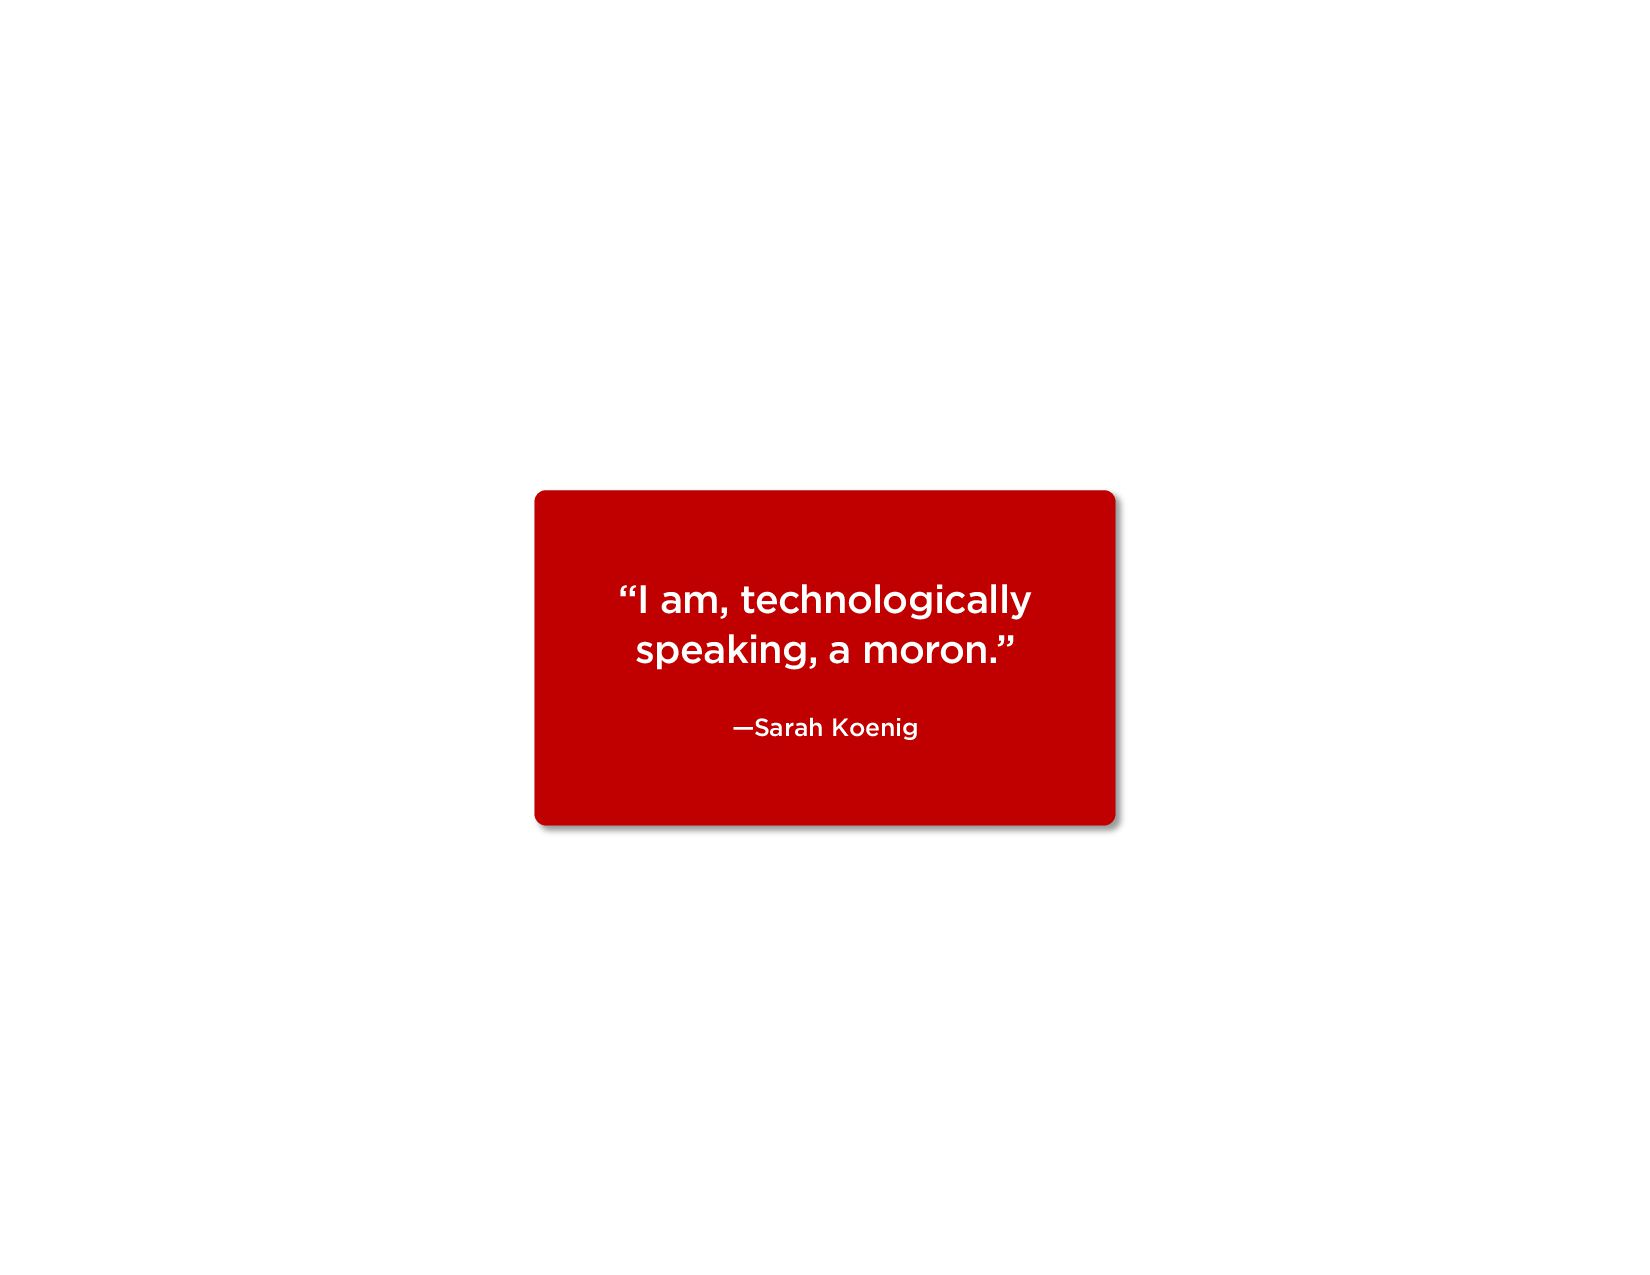 HUMOR People flock to the funny. 02